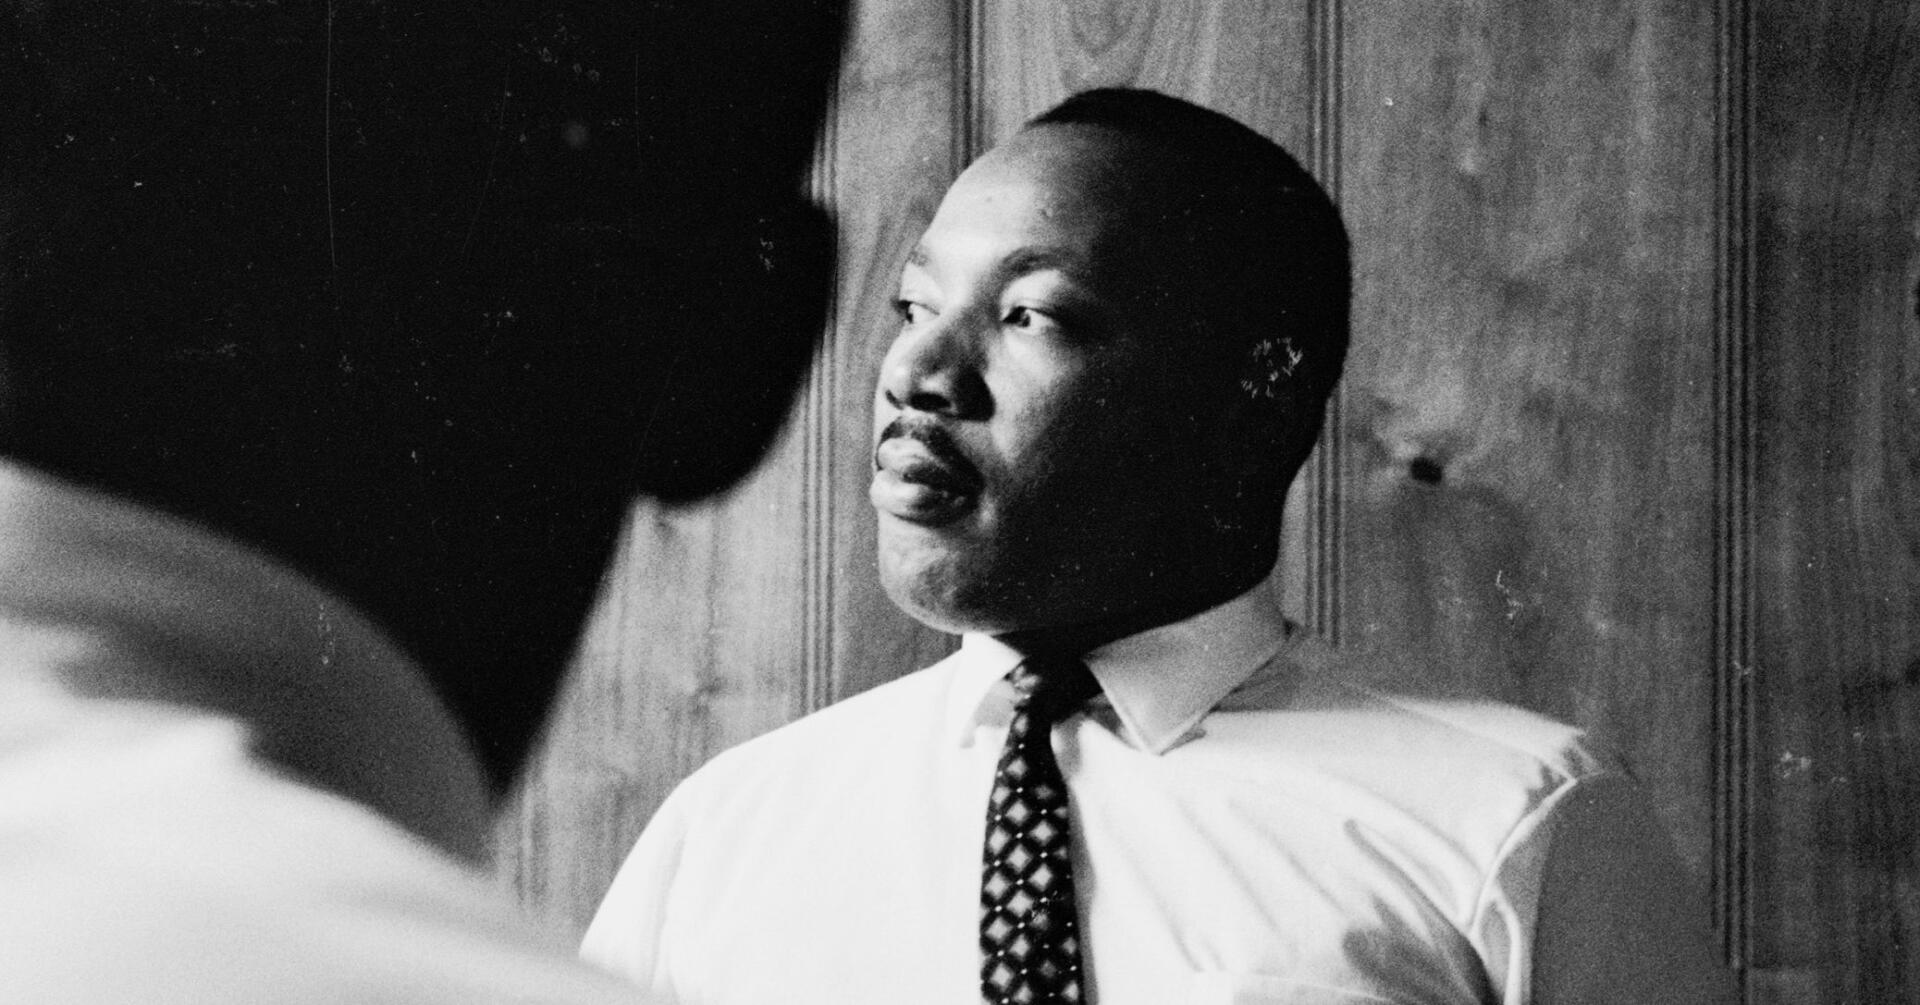 An Intimate View of MLK Through the Lens of a Friend